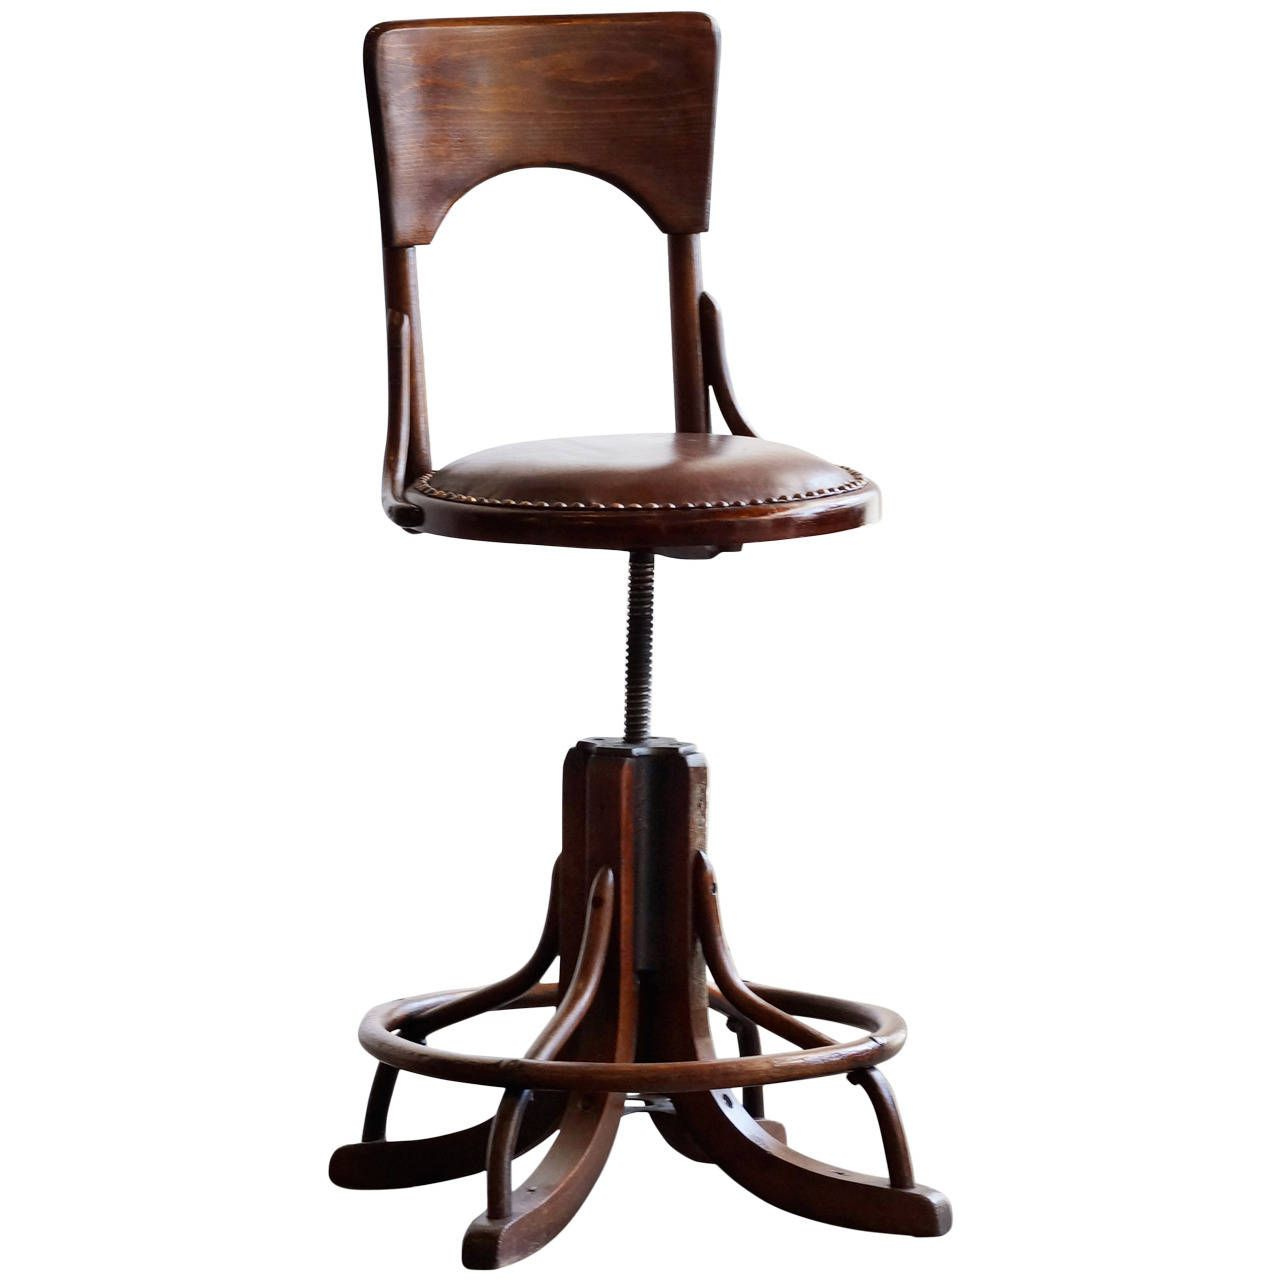 Antique Wood Drafting Stool, circa 1890s | From a unique collection of antique and modern office chairs and desk chairs at https://www.1stdibs.com/furniture/seating/office-chairs-desk-chairs/